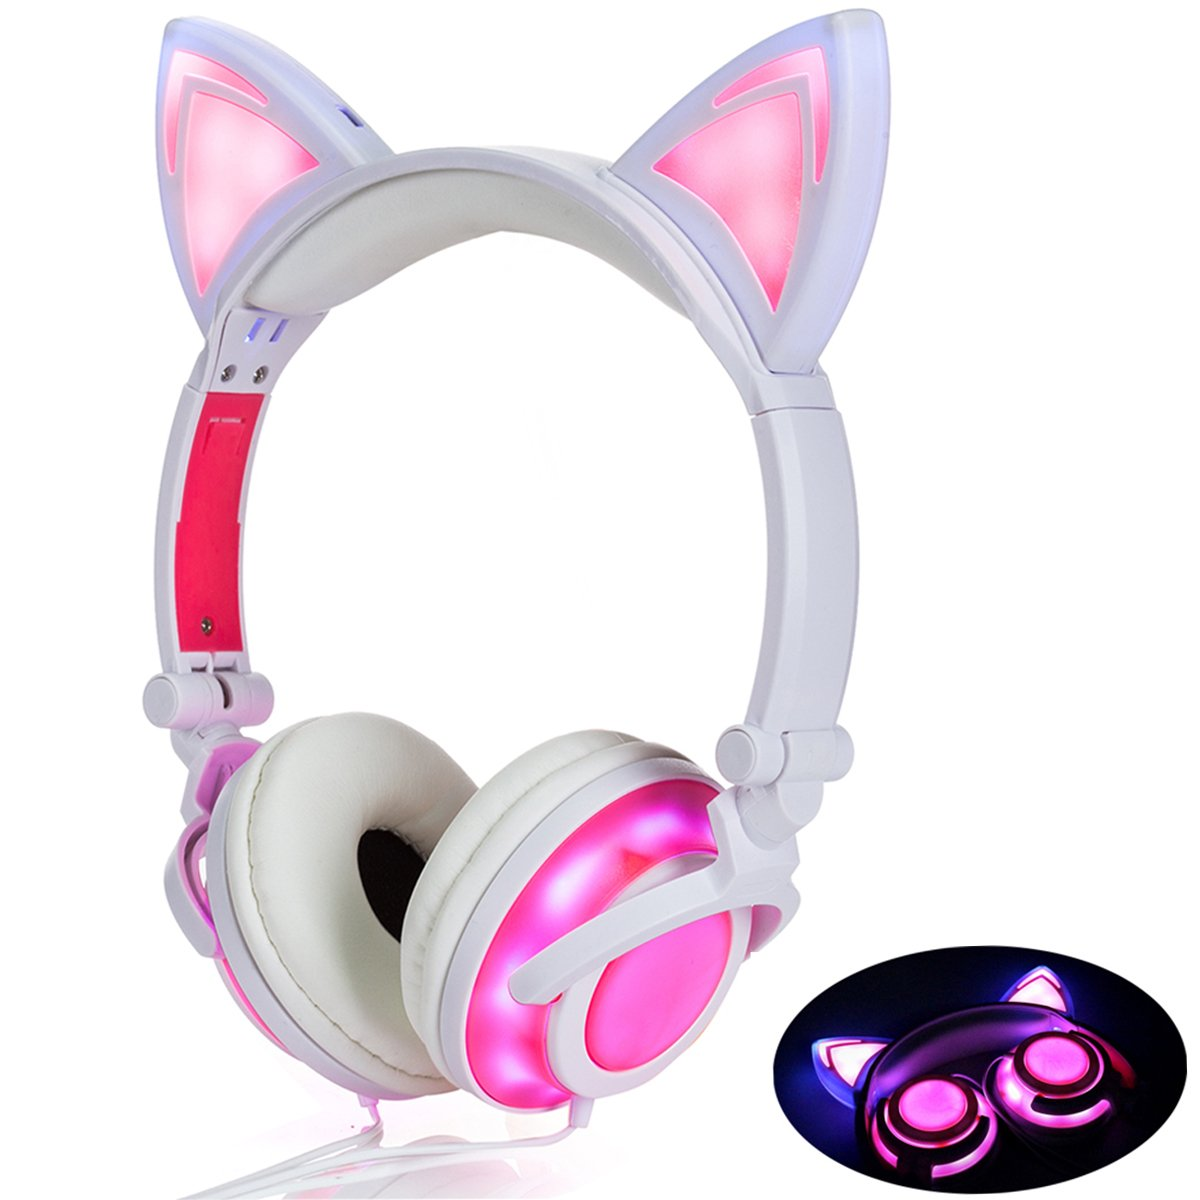 Cute Cat Ear Headset LED Light with USB Chargeable Foldable Earphones for Ipad,Tablet,Computer,Mobile Phone  Pink